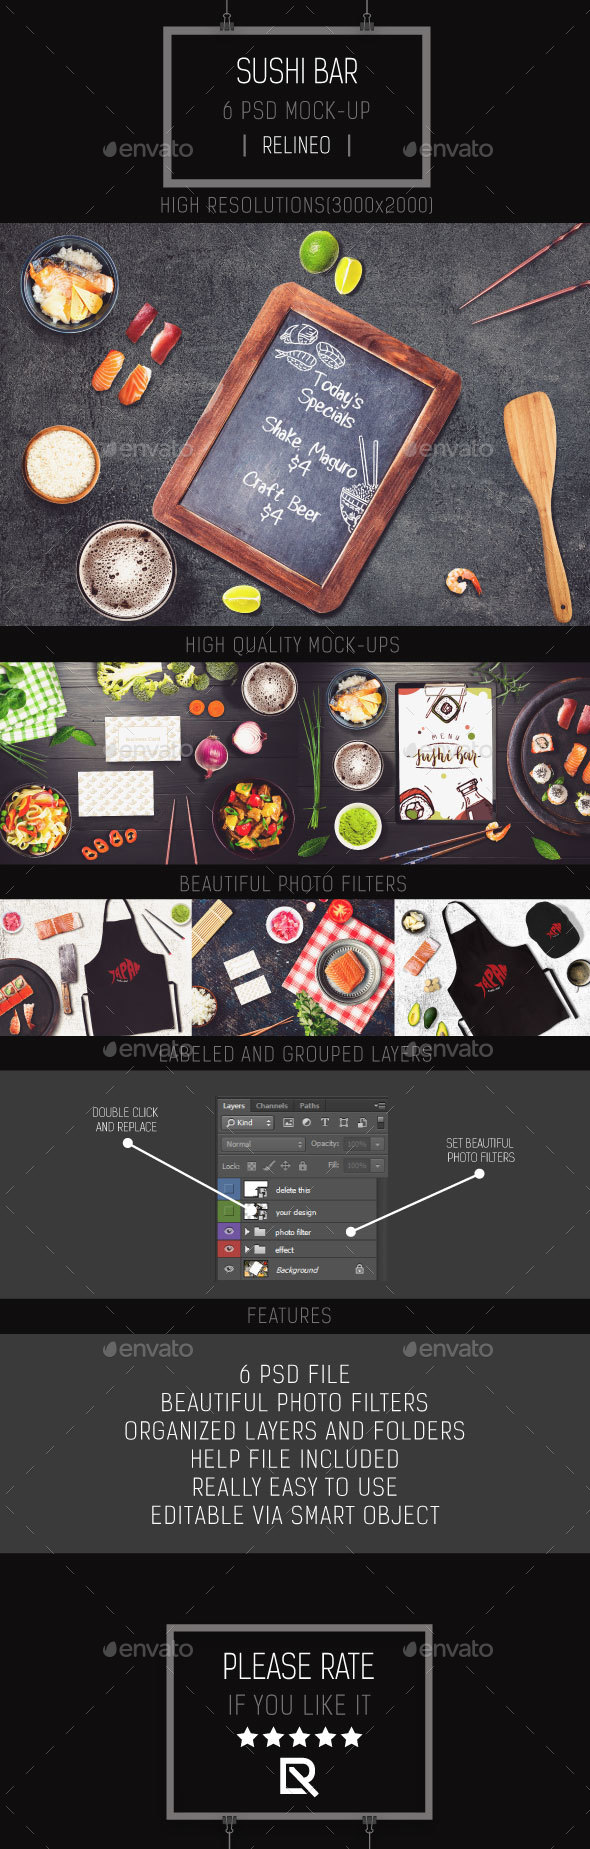 Sushi Bar Mock-up Pack Vol.3 - Miscellaneous Product Mock-Ups